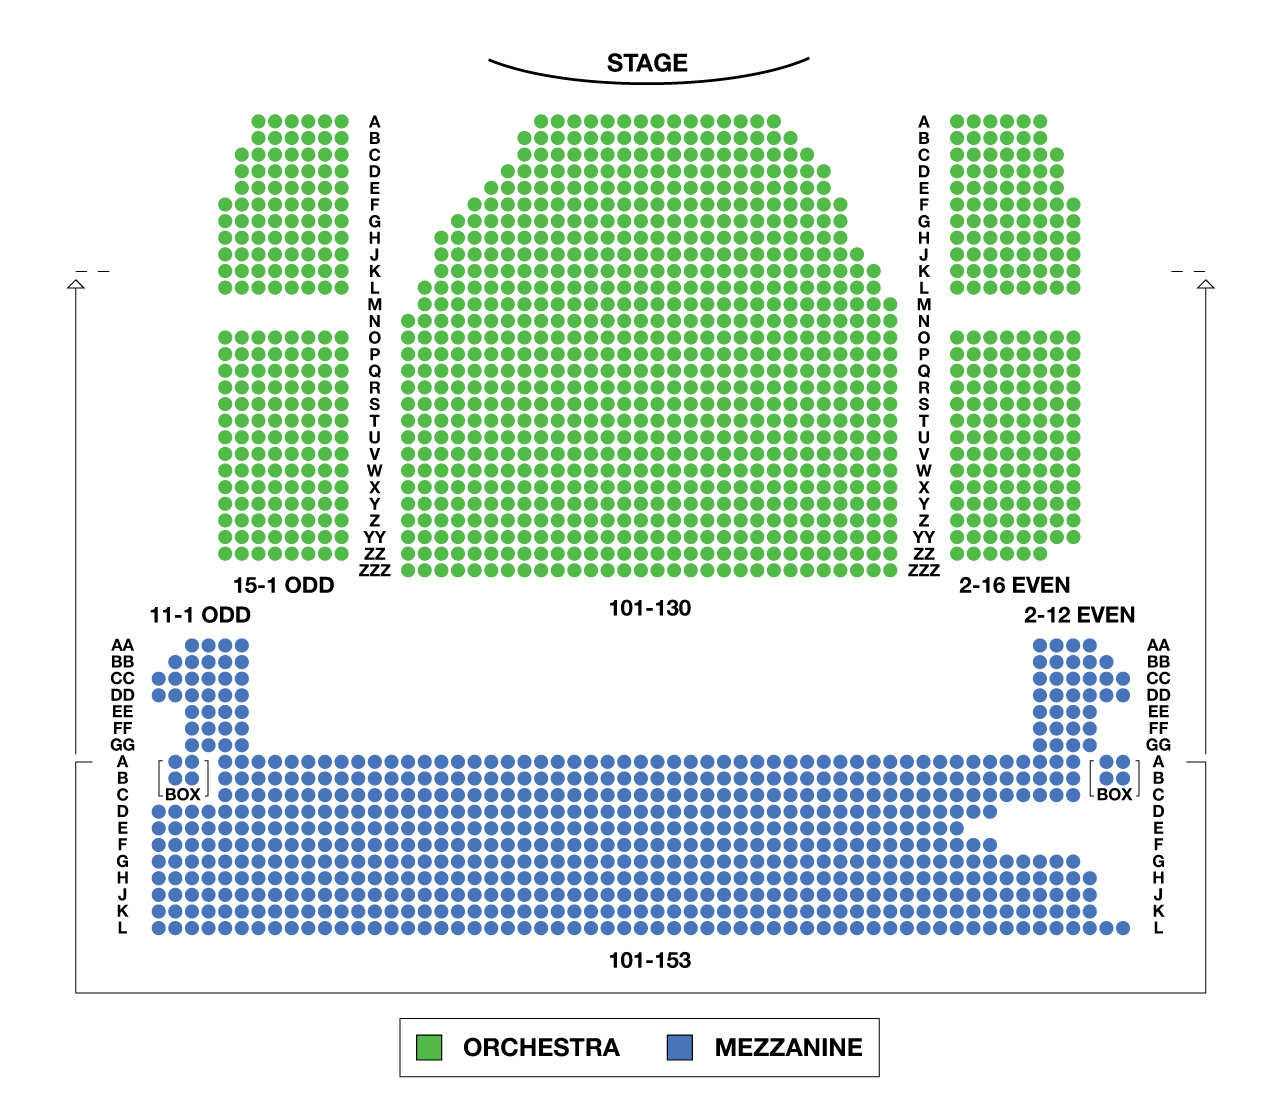 Minskoff Theatre Large Broadway Seating Charts